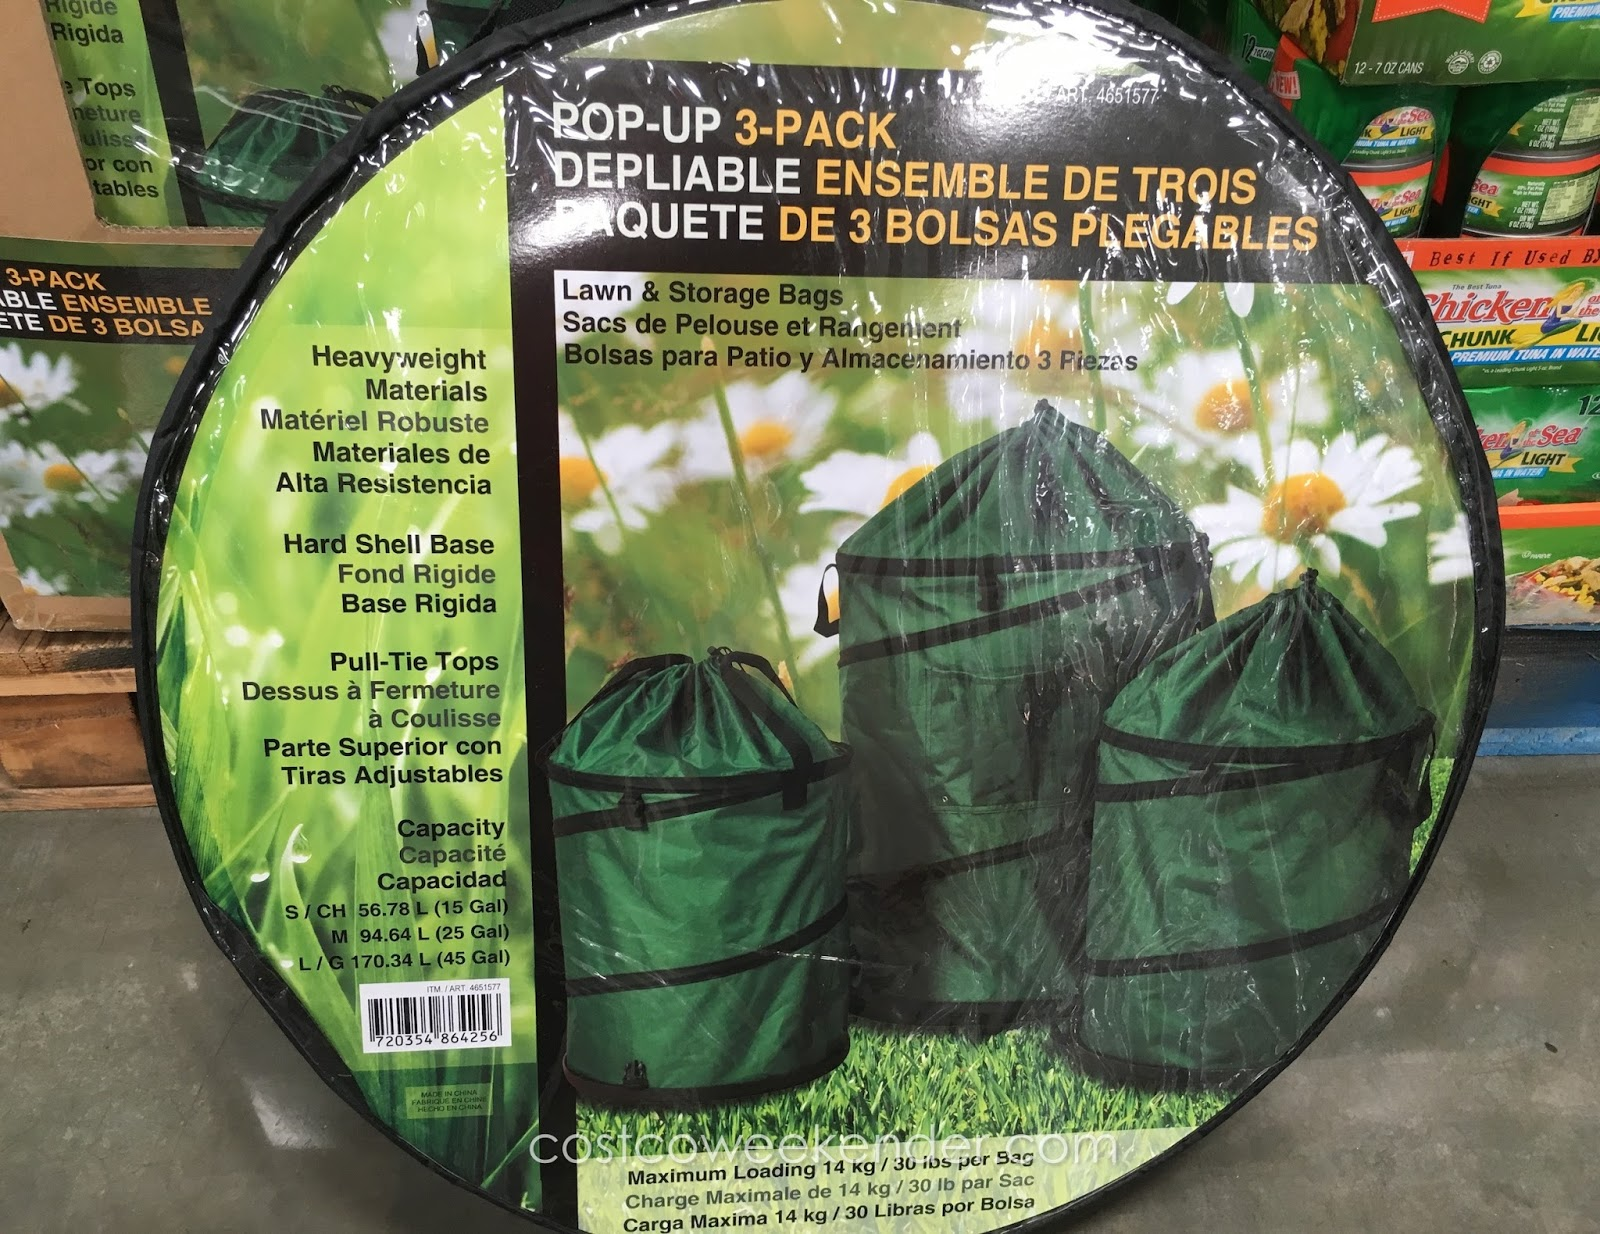 Stylecraft Collapsible Pop Up Lawn And Storage Bags 3